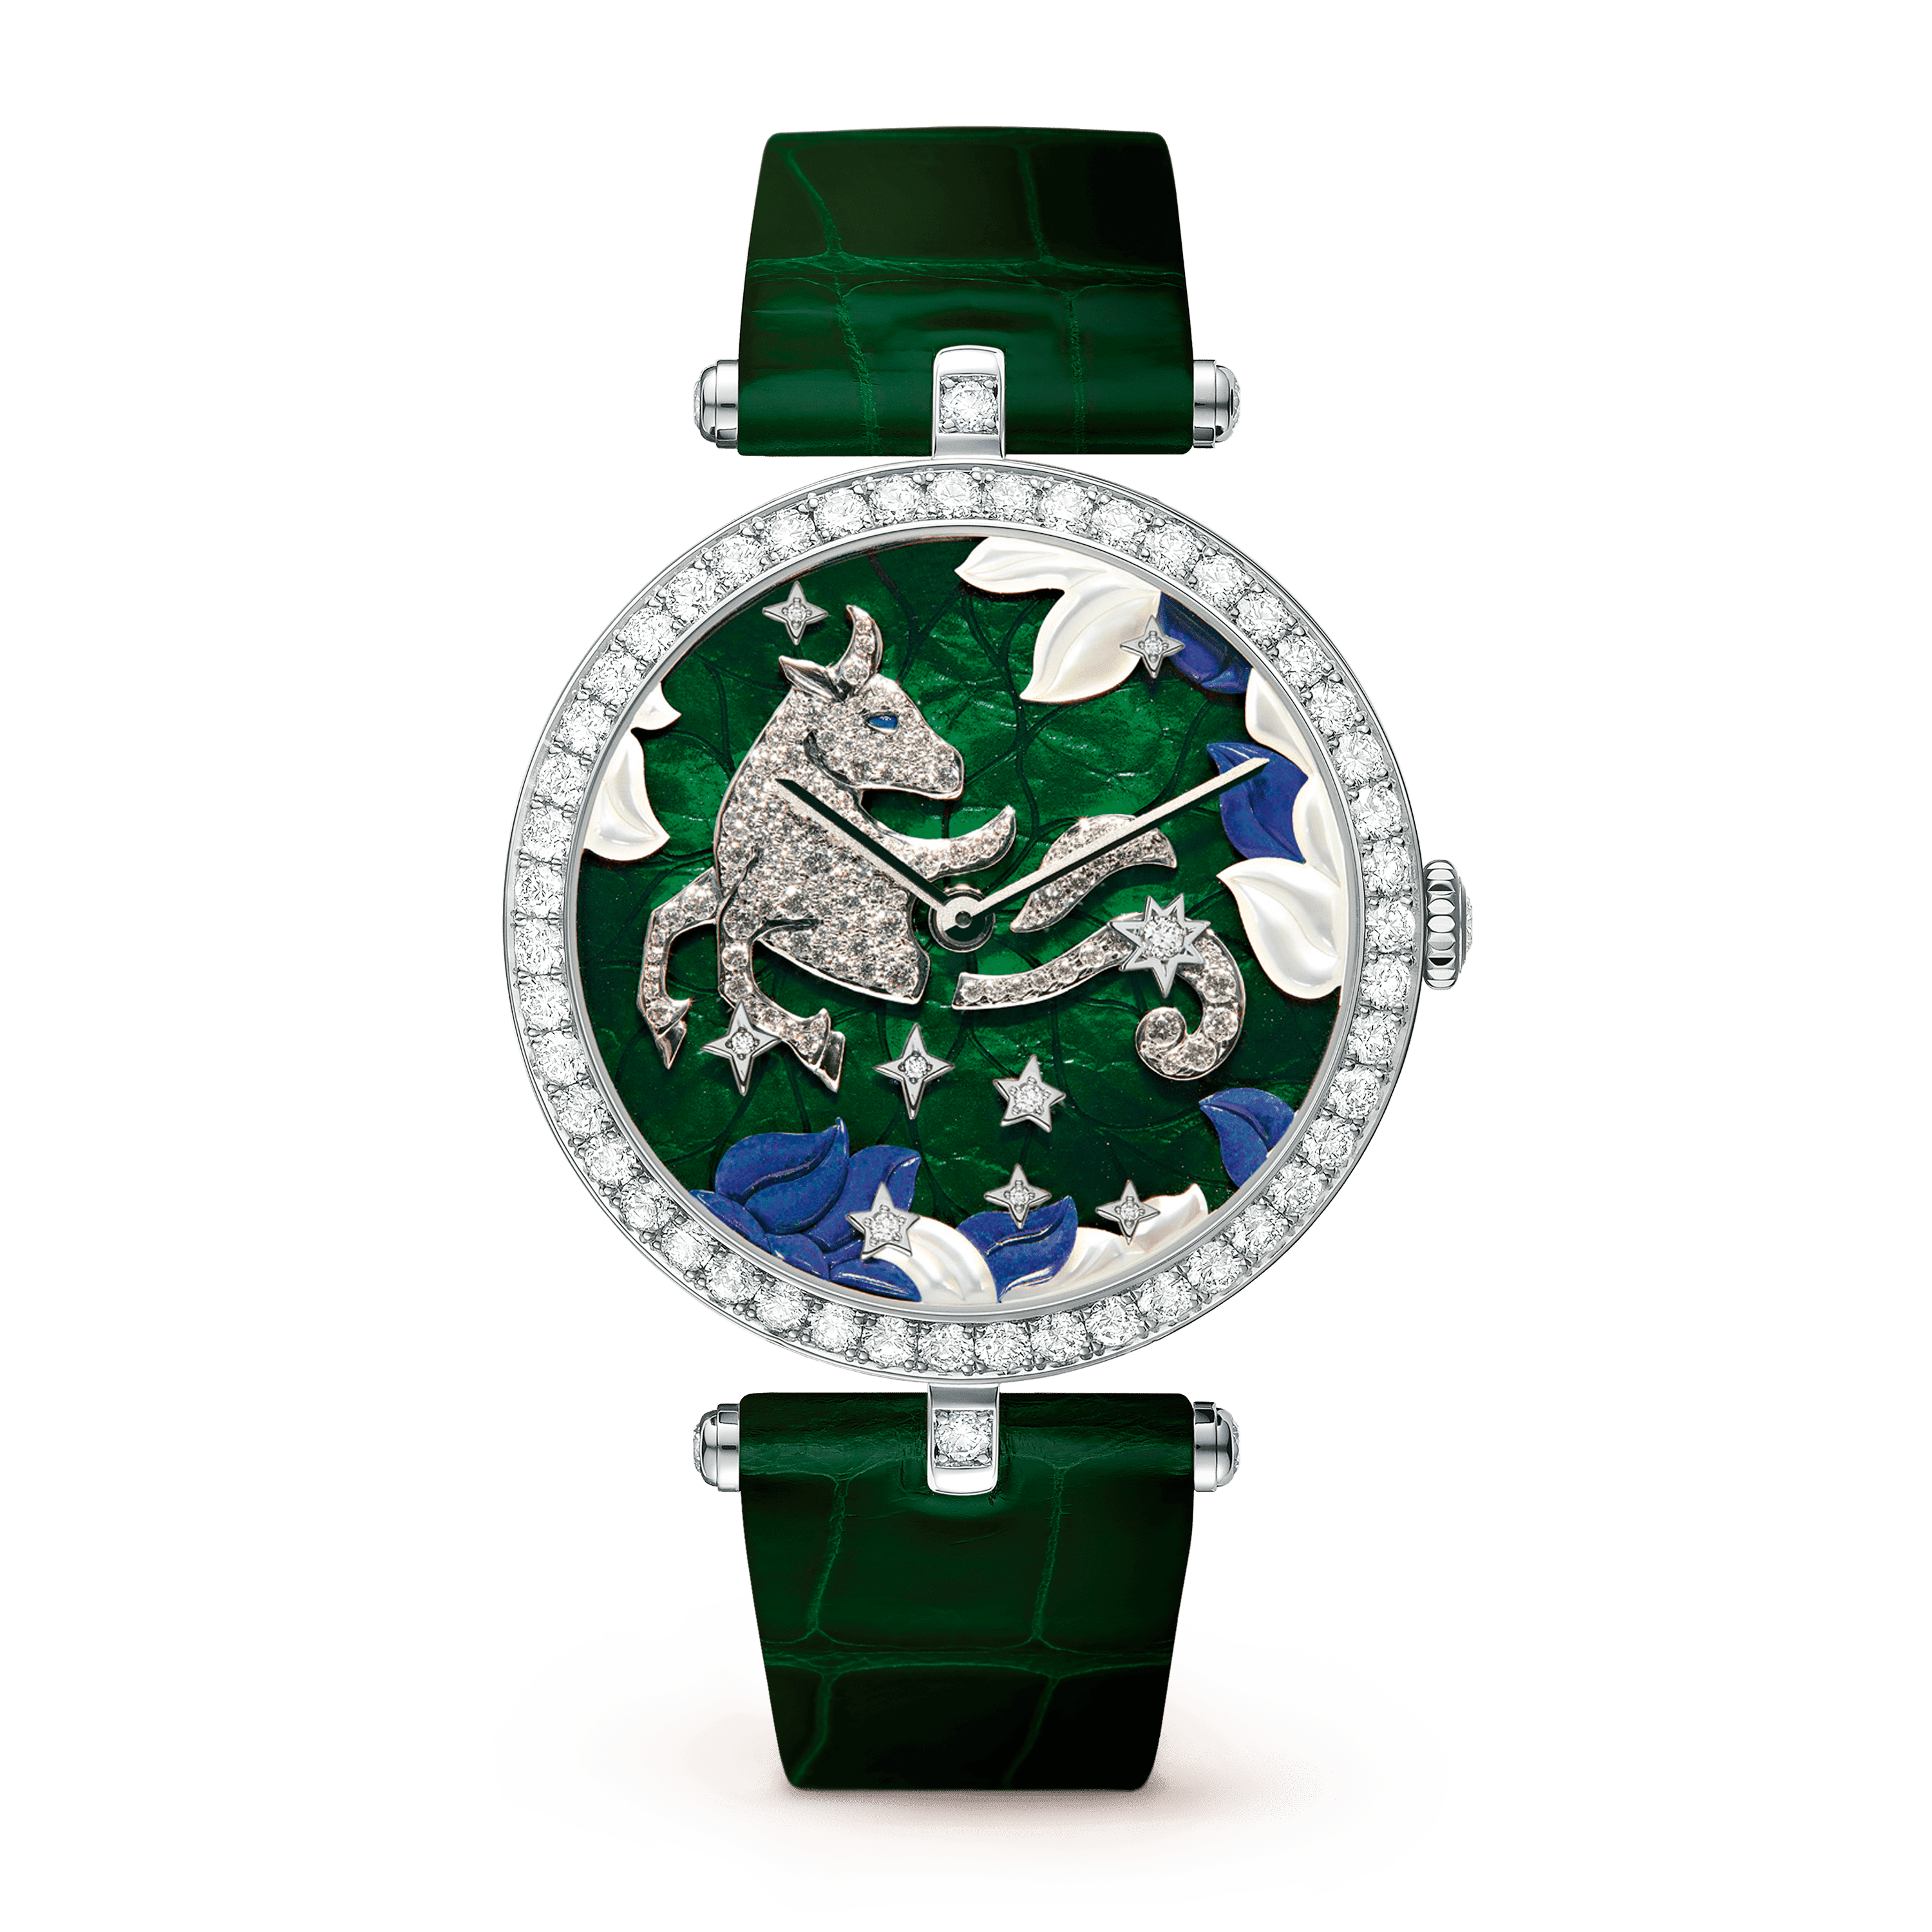 Lady Arpels Zodiac Taurus Watch,Shiny alligator, square scale - Front View - VCARO4I200 - Van Cleef & Arpels